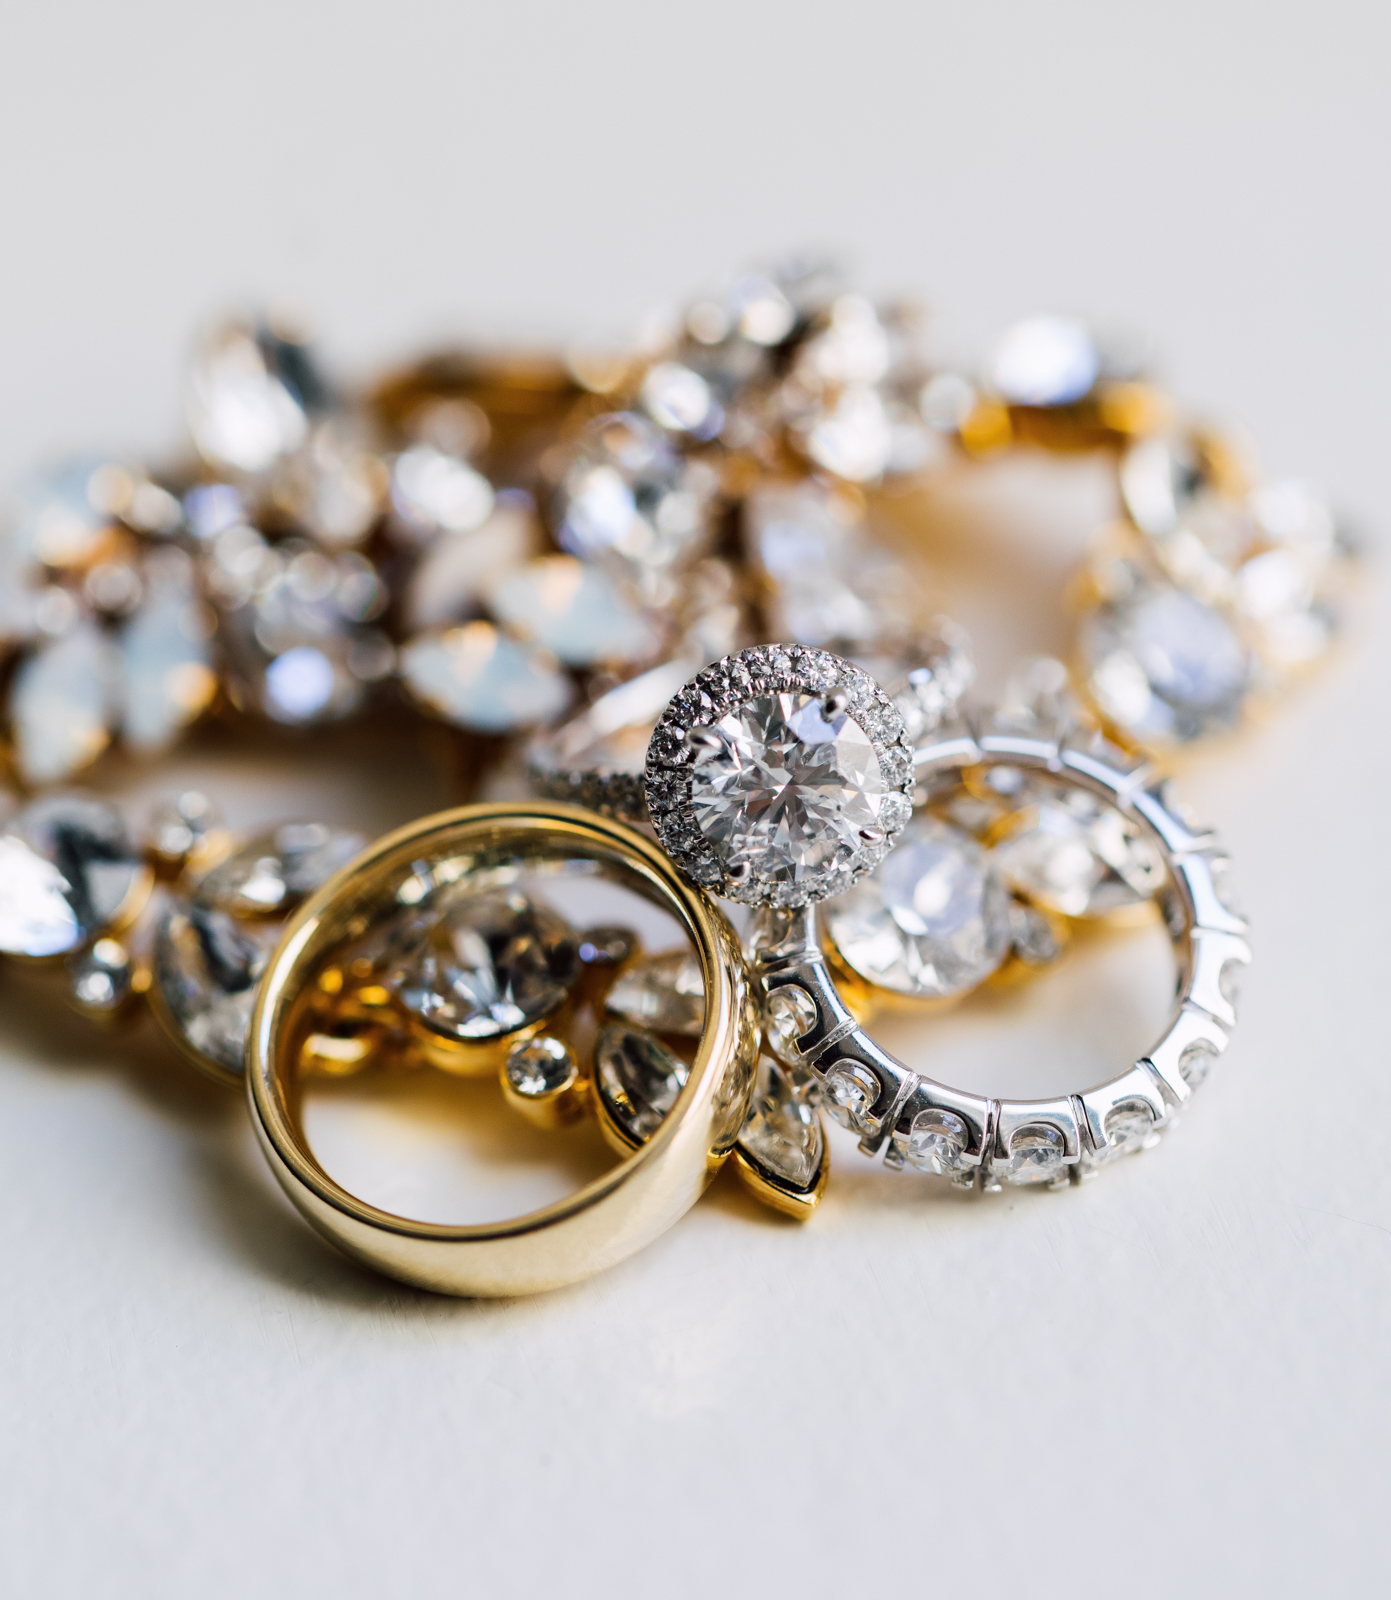 Corona wedding jewellery